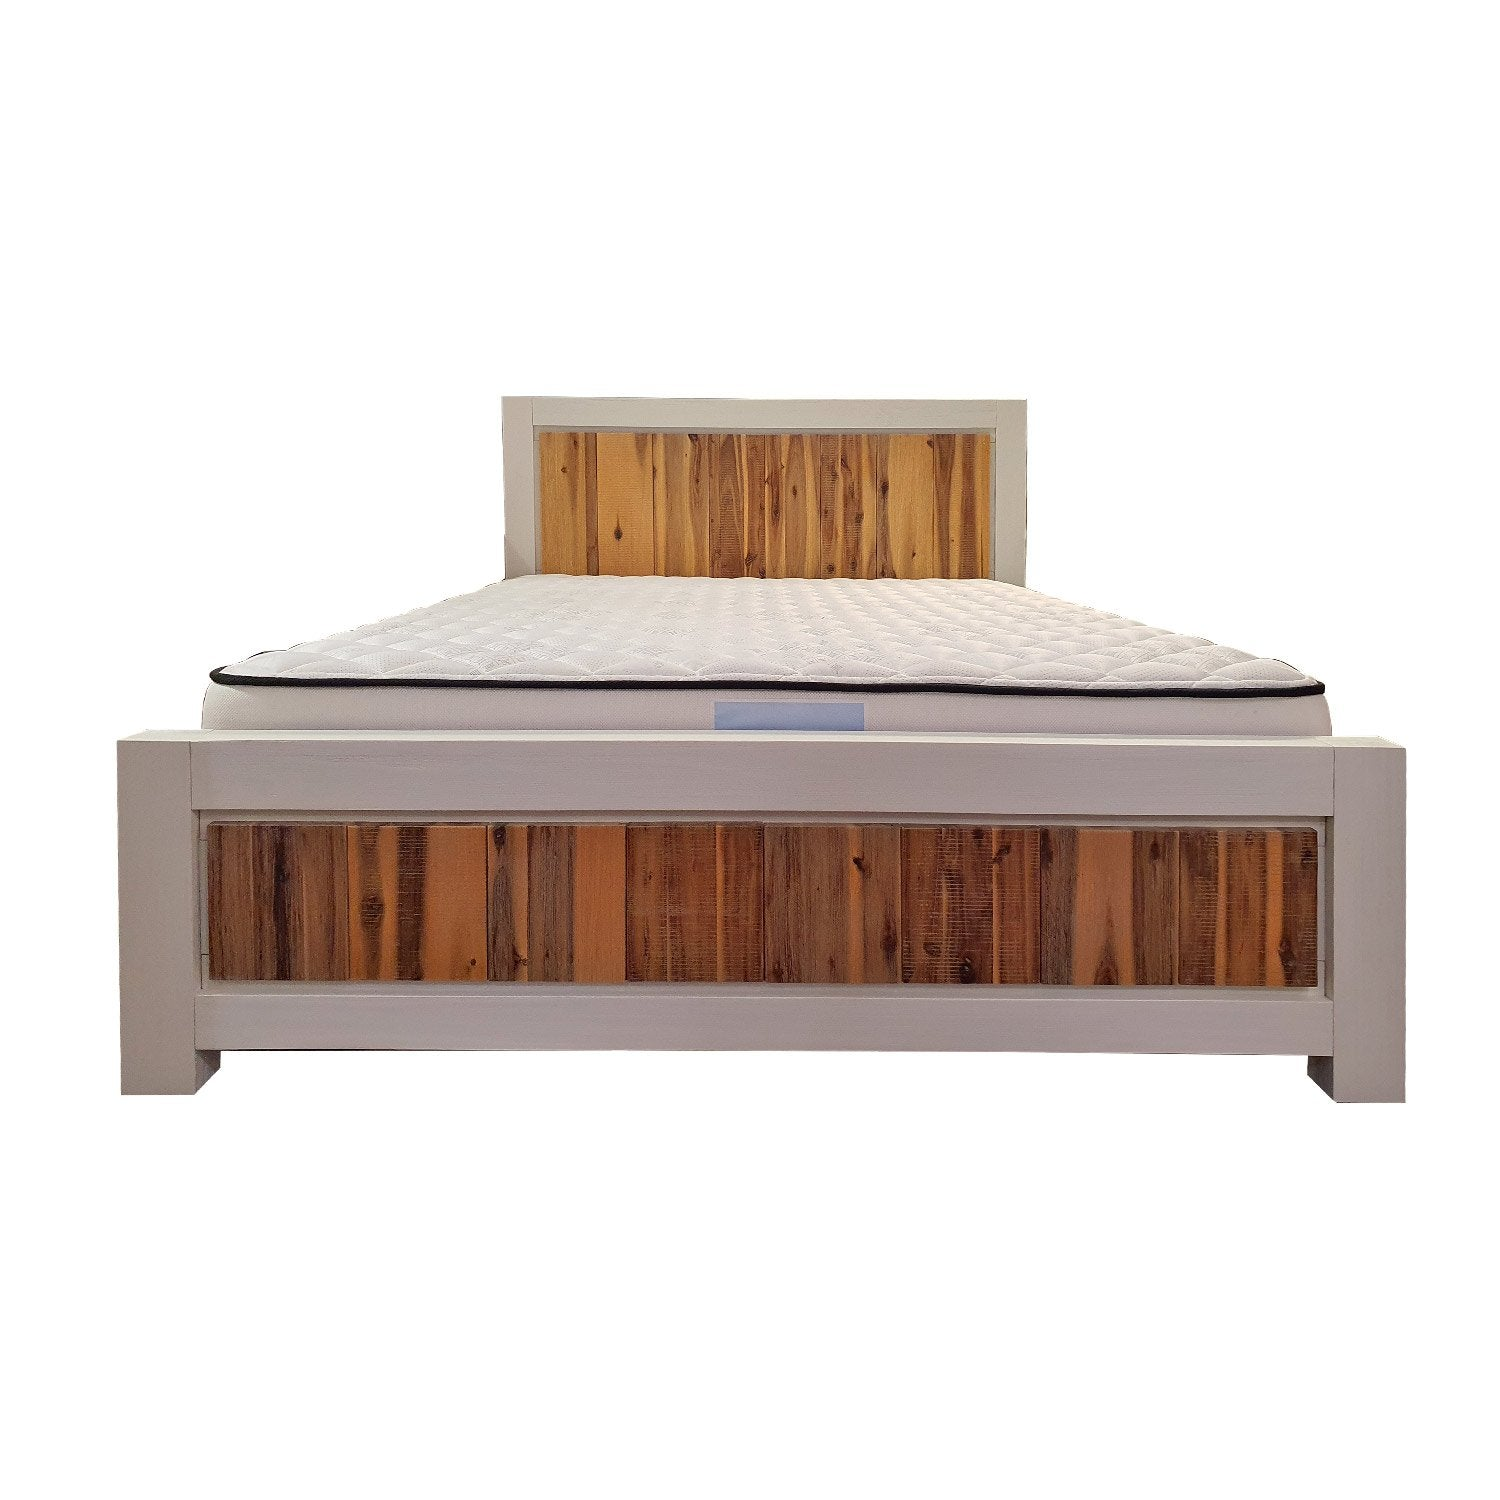 Costa Rica Bed Frame